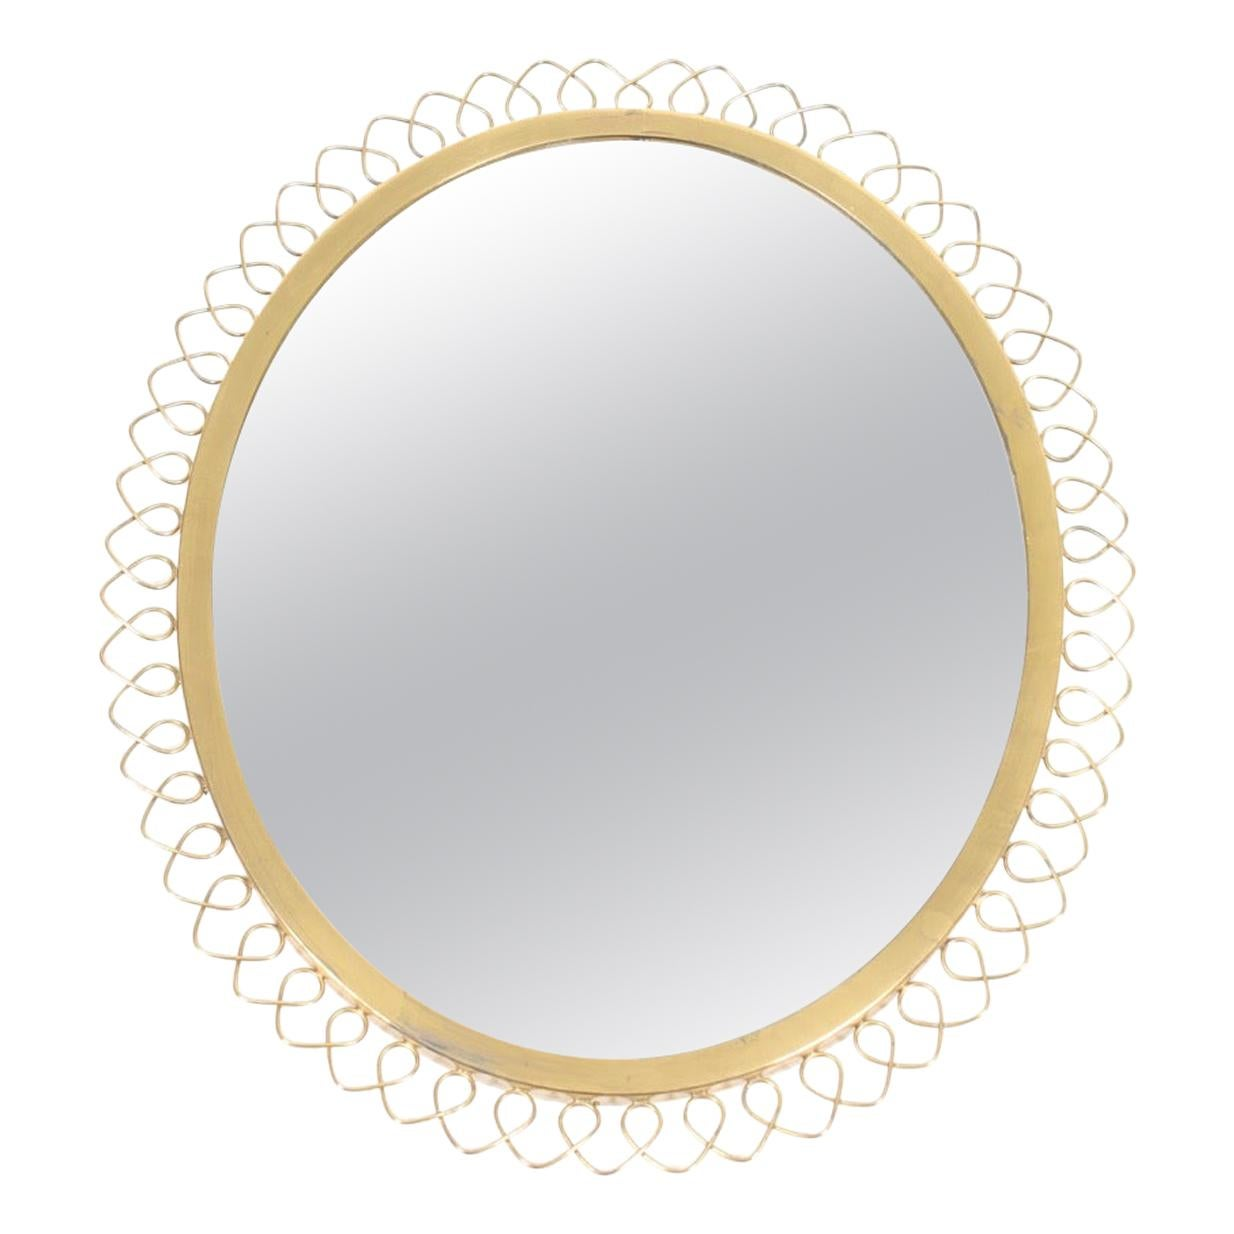 Midcentury Wall Mirror in Brass Made in Sweden, 1950s